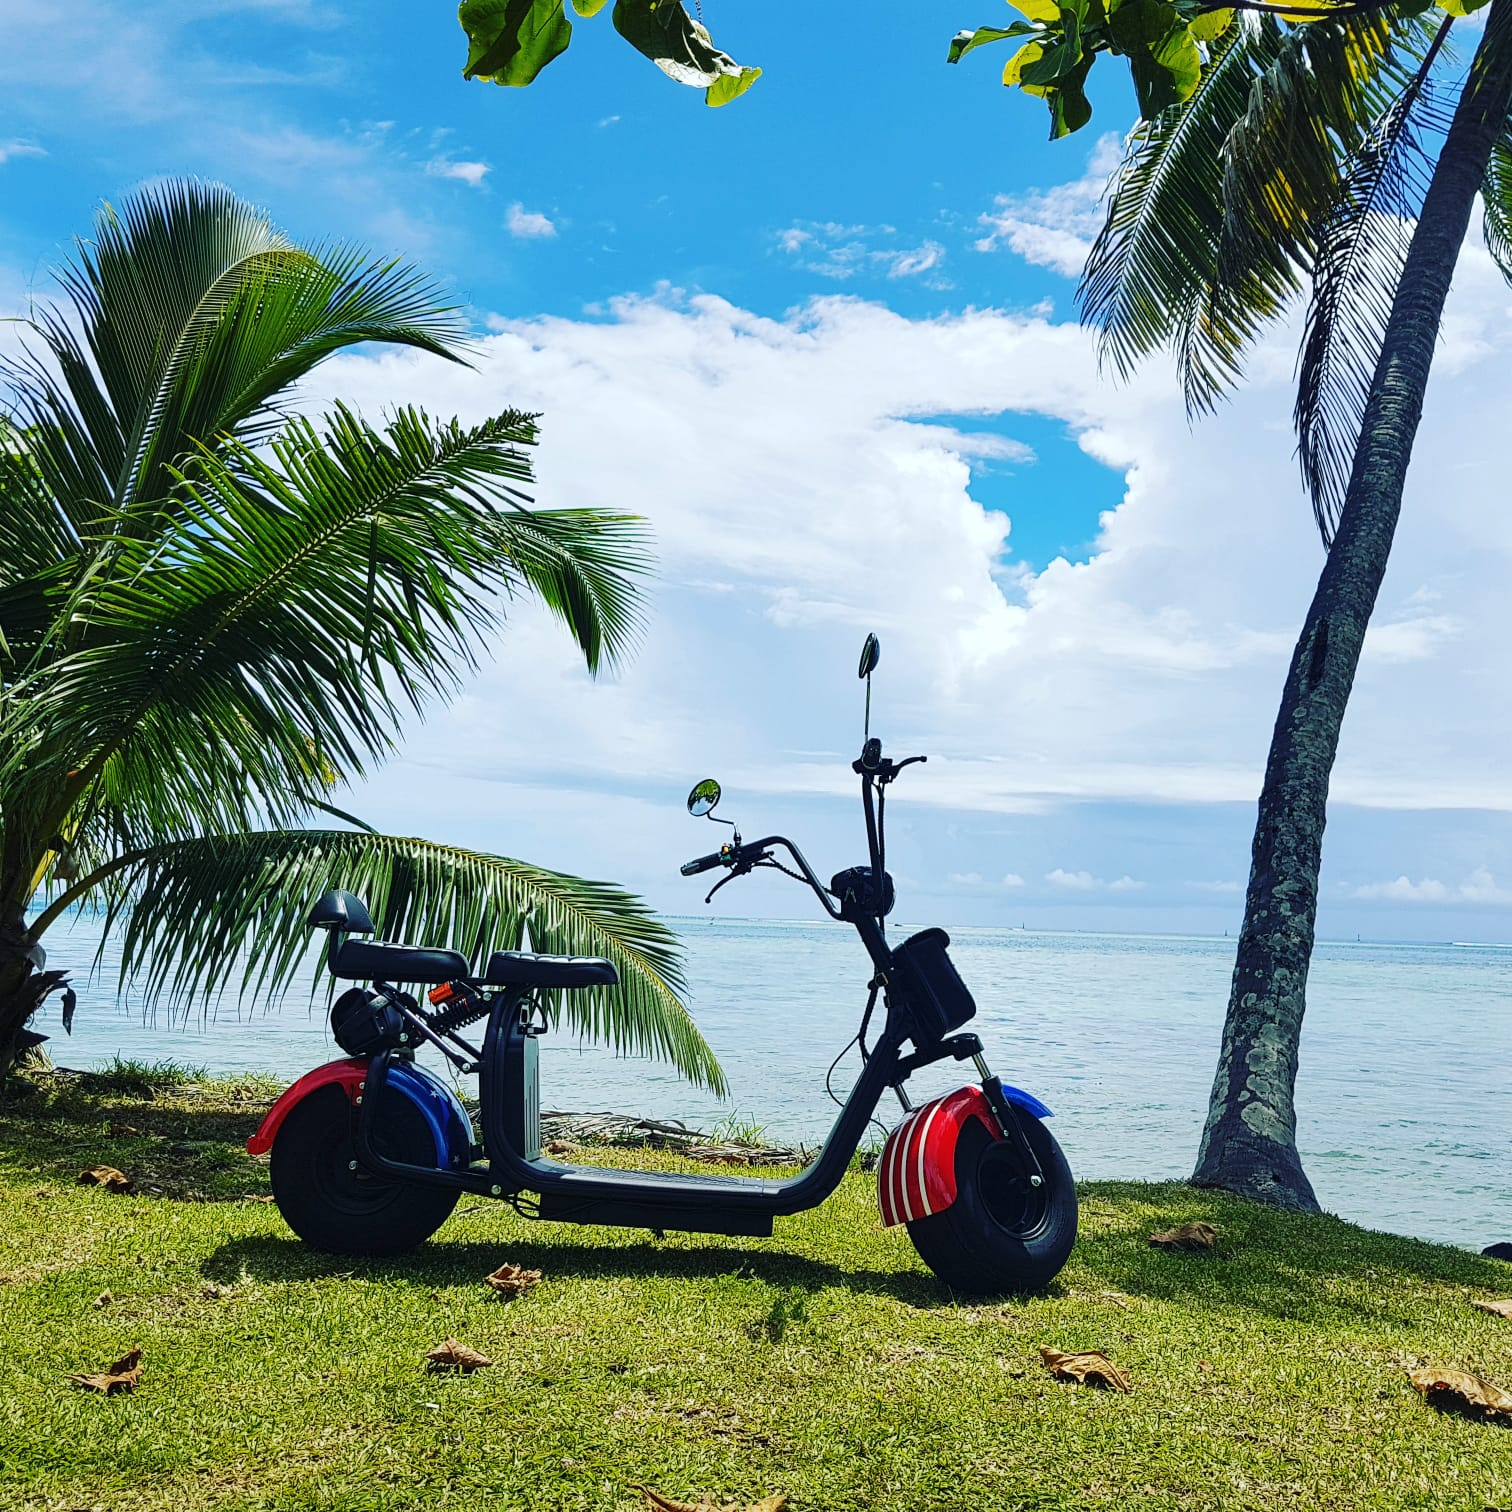 https://tahititourisme.be/wp-content/uploads/2019/04/4456B30F-4411-4897-BB78-692F756B865F.jpeg